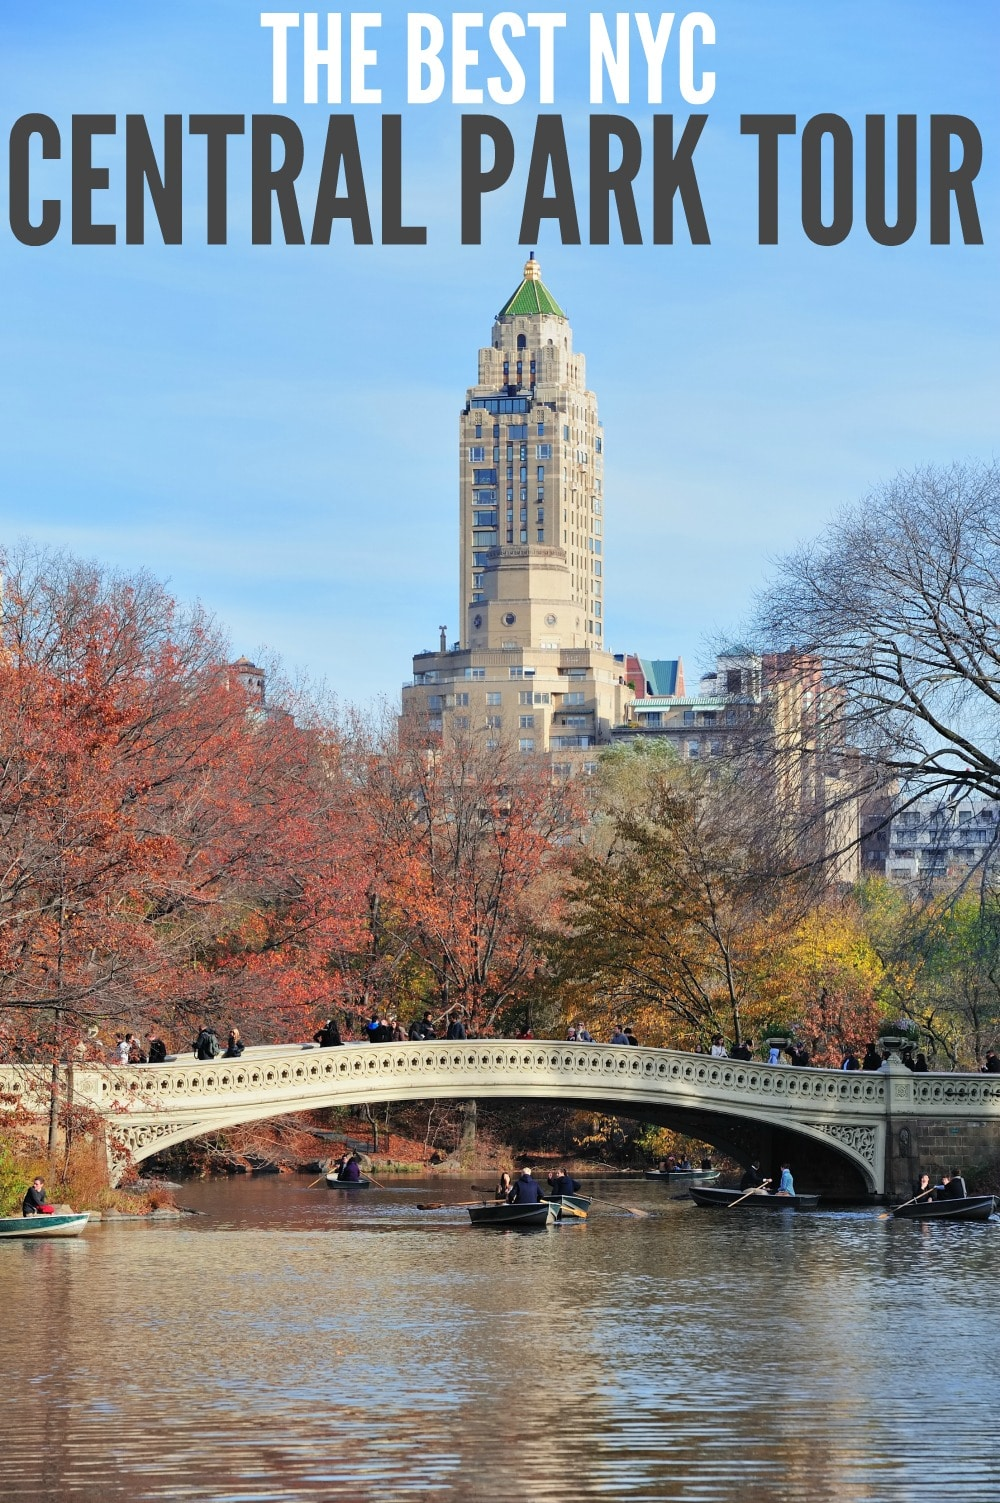 The Best NYC Central Park Tour